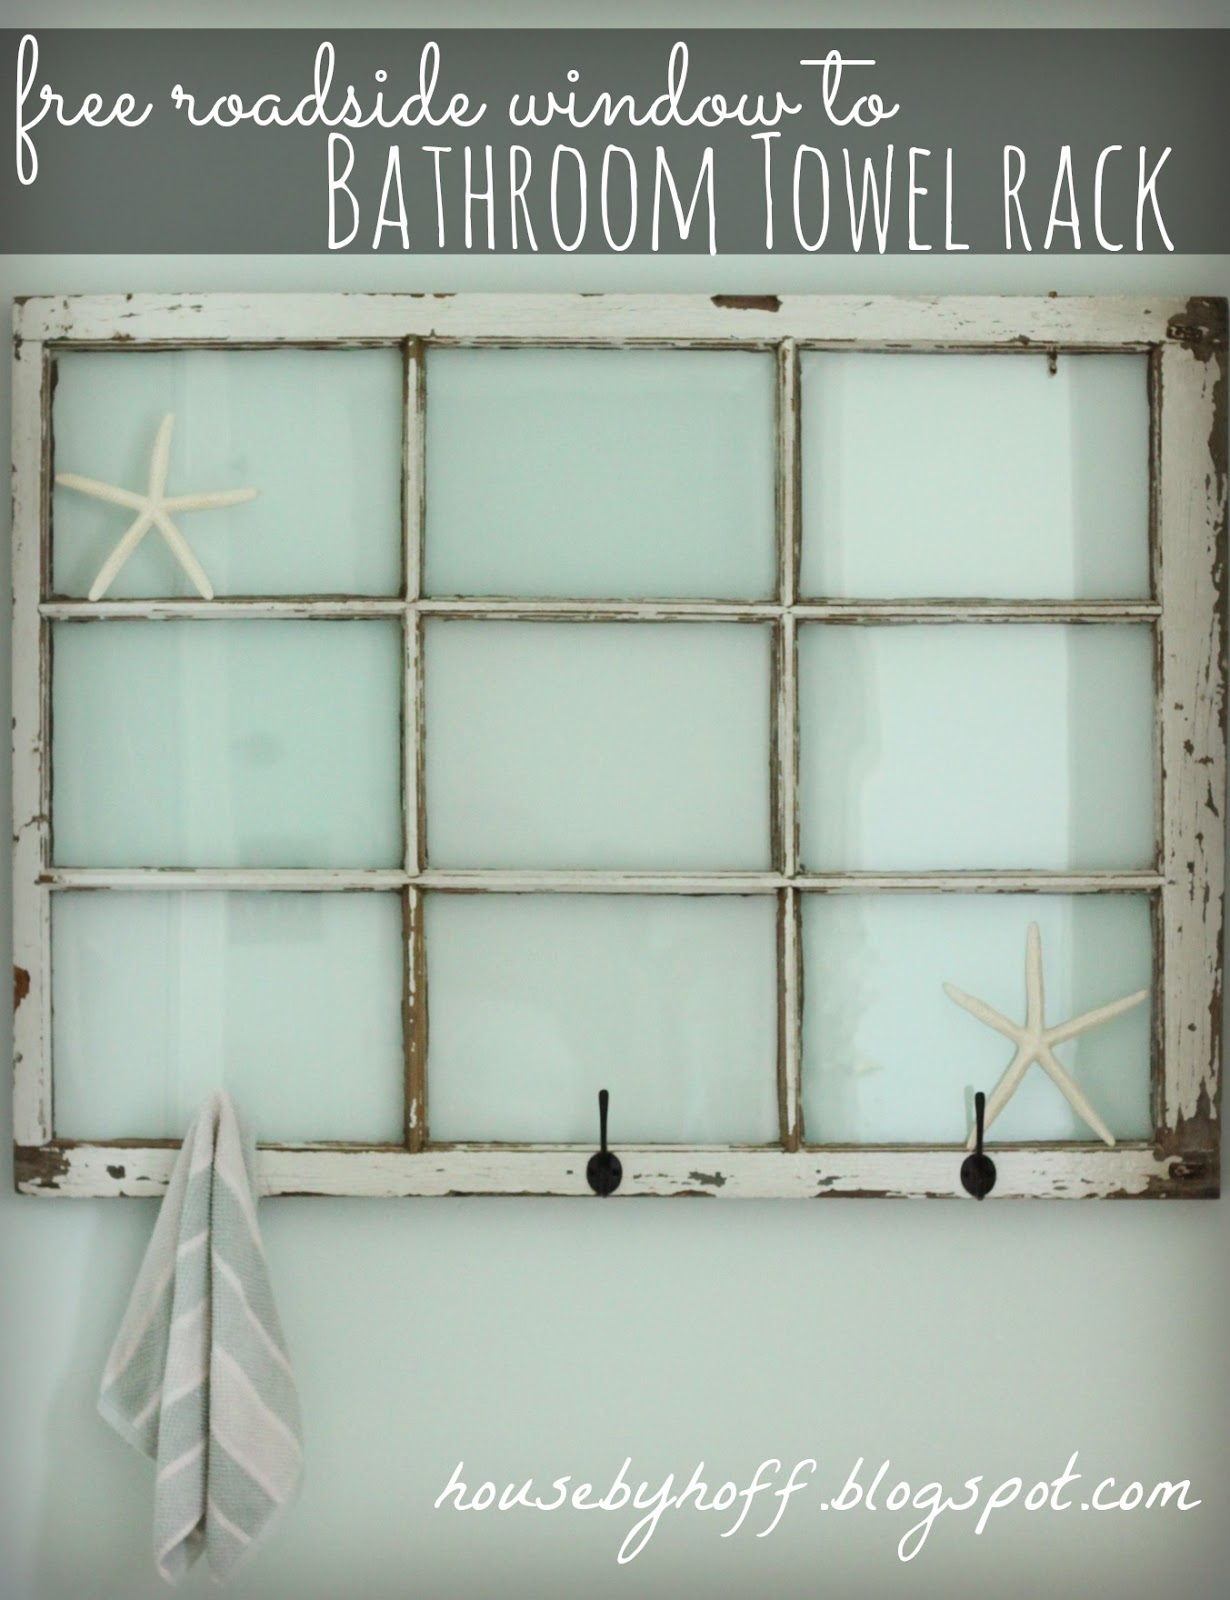 Fenster Bad Repurposed Window Bathroom Towel Rack House By Hoff